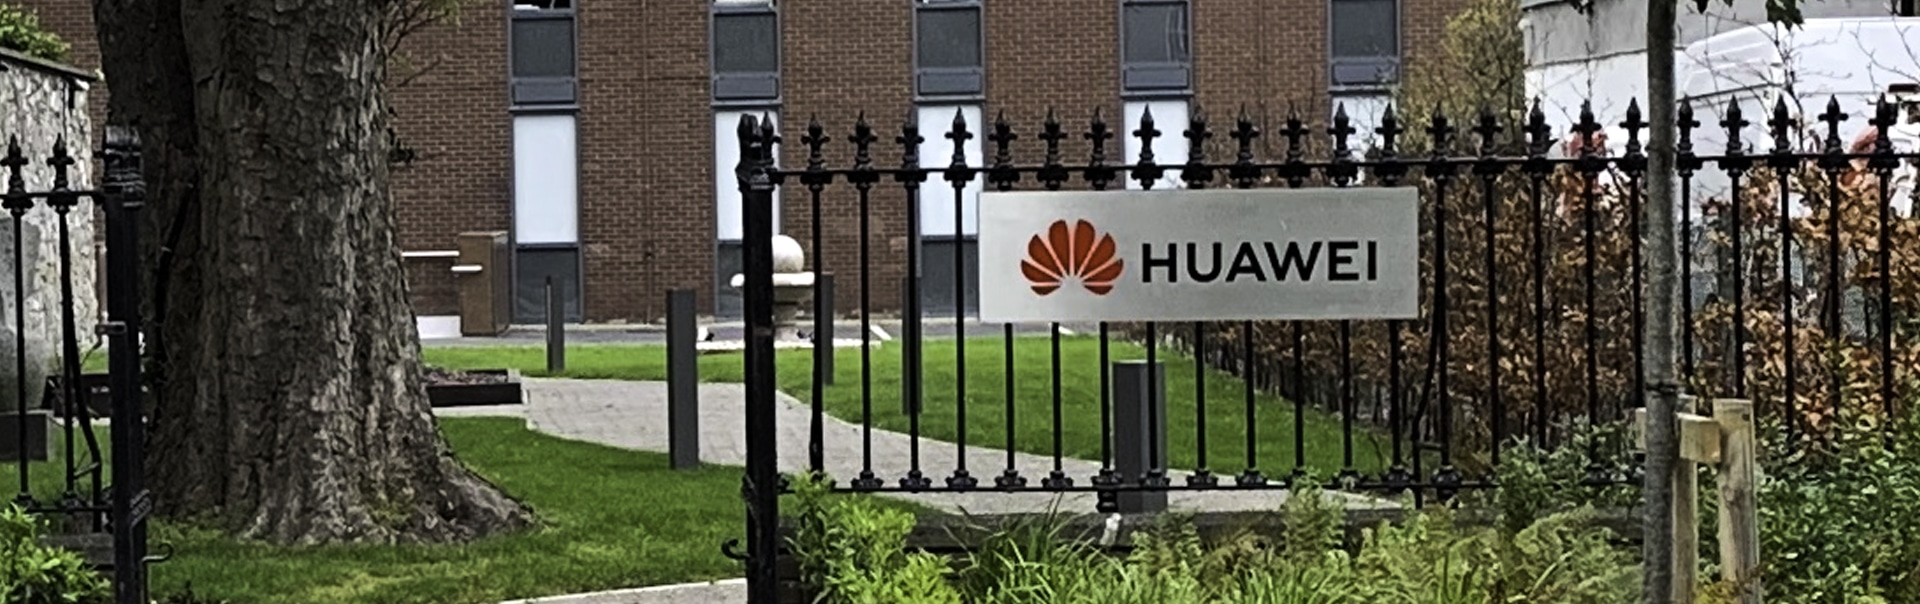 Huawei Sign | Plaques & Nameplates